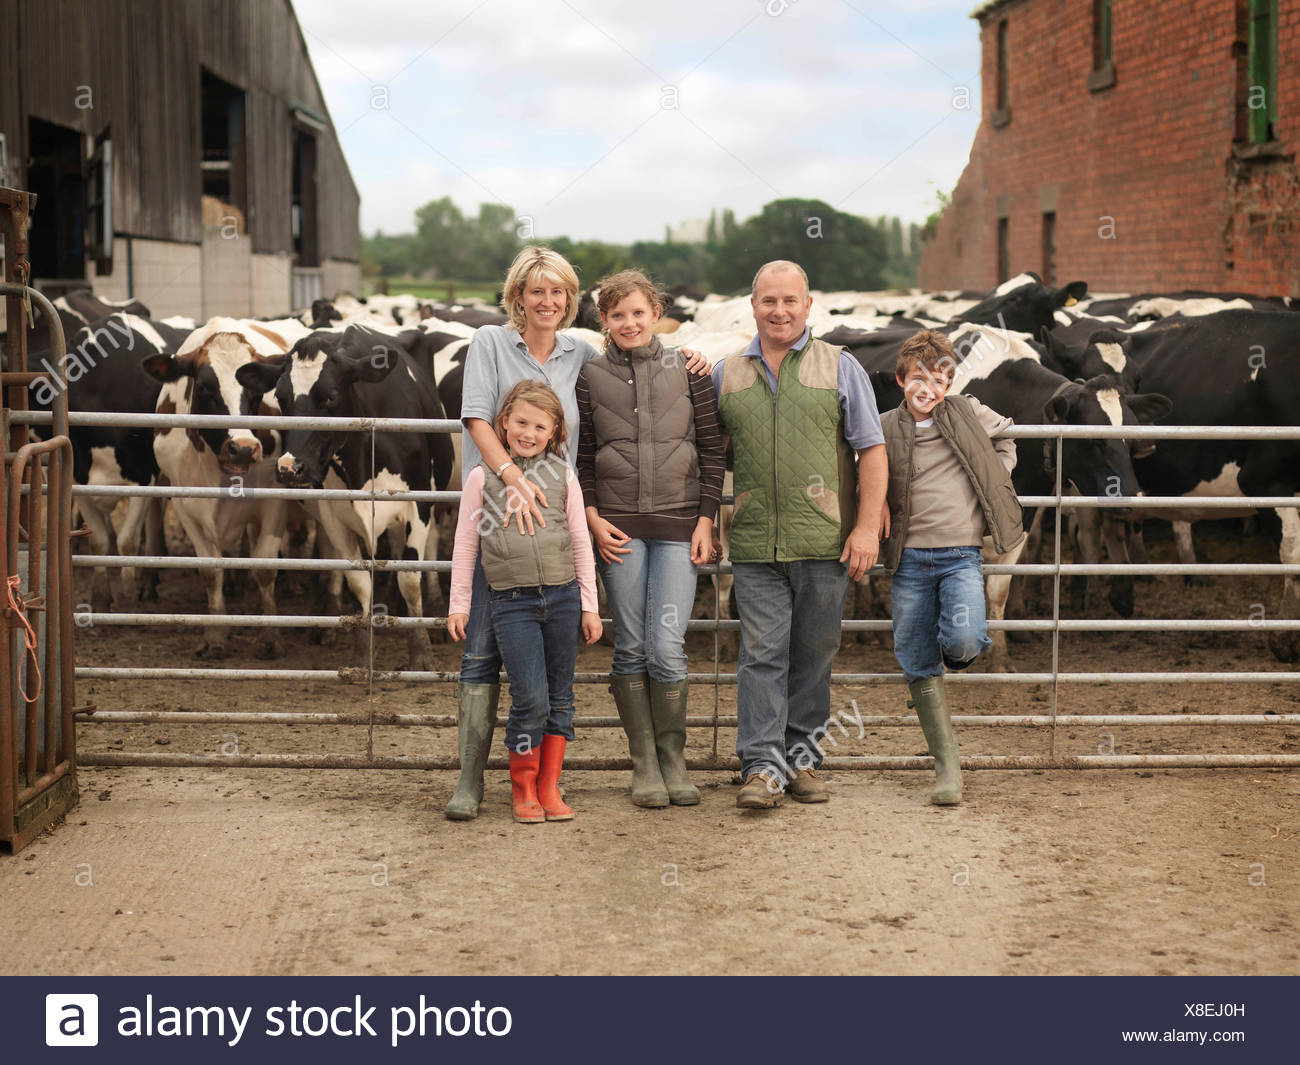 Farmer And Family With Cows - Stock Image